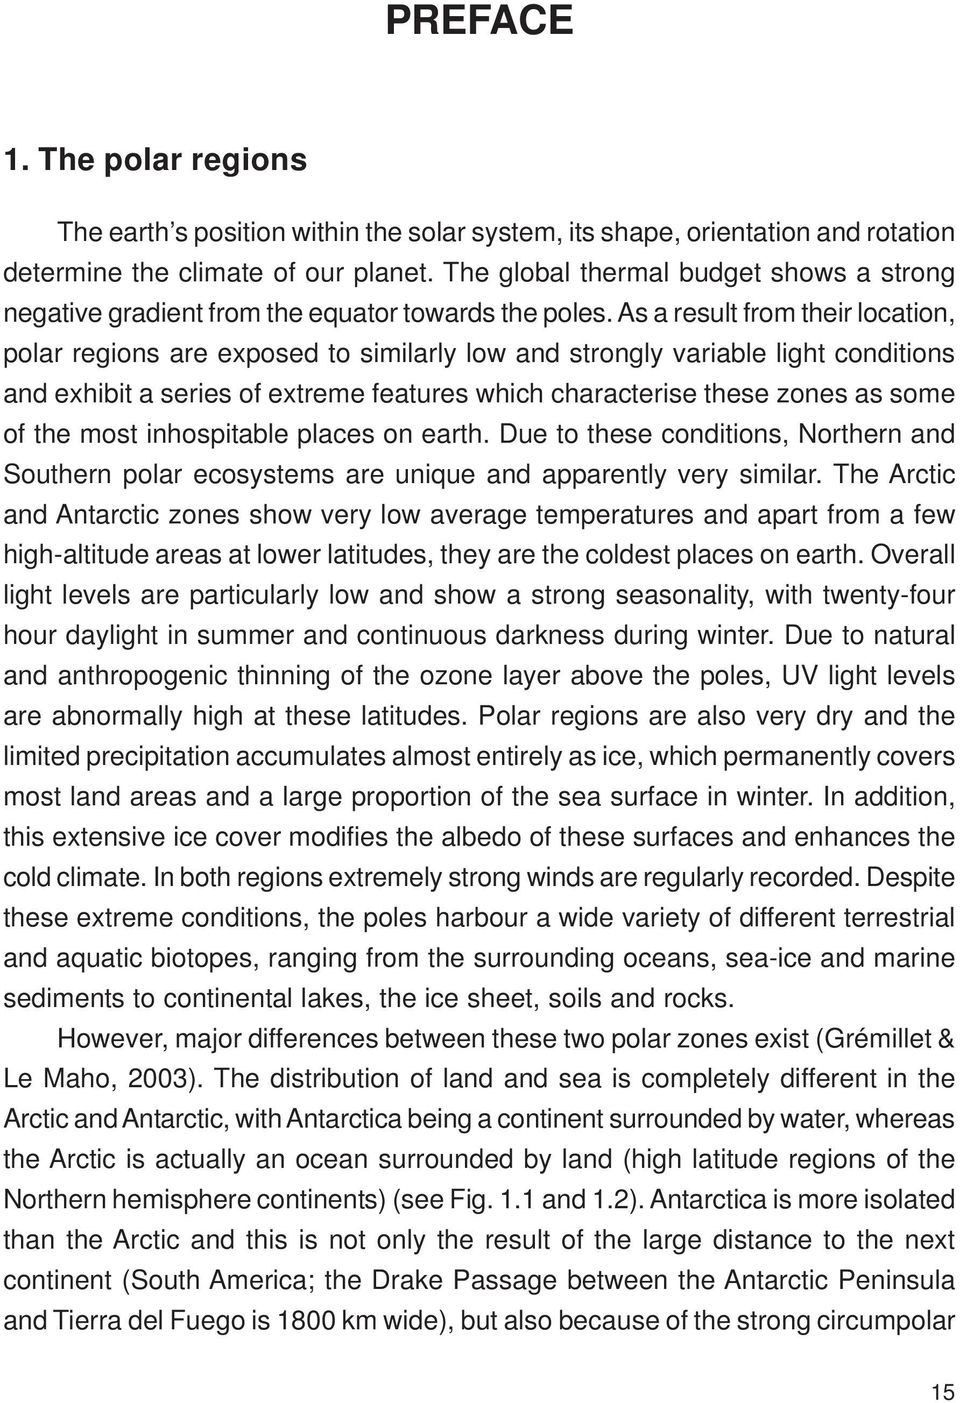 As a result from their location, polar regions are exposed to similarly low and strongly variable light conditions and exhibit a series of extreme features which characterise these zones as some of